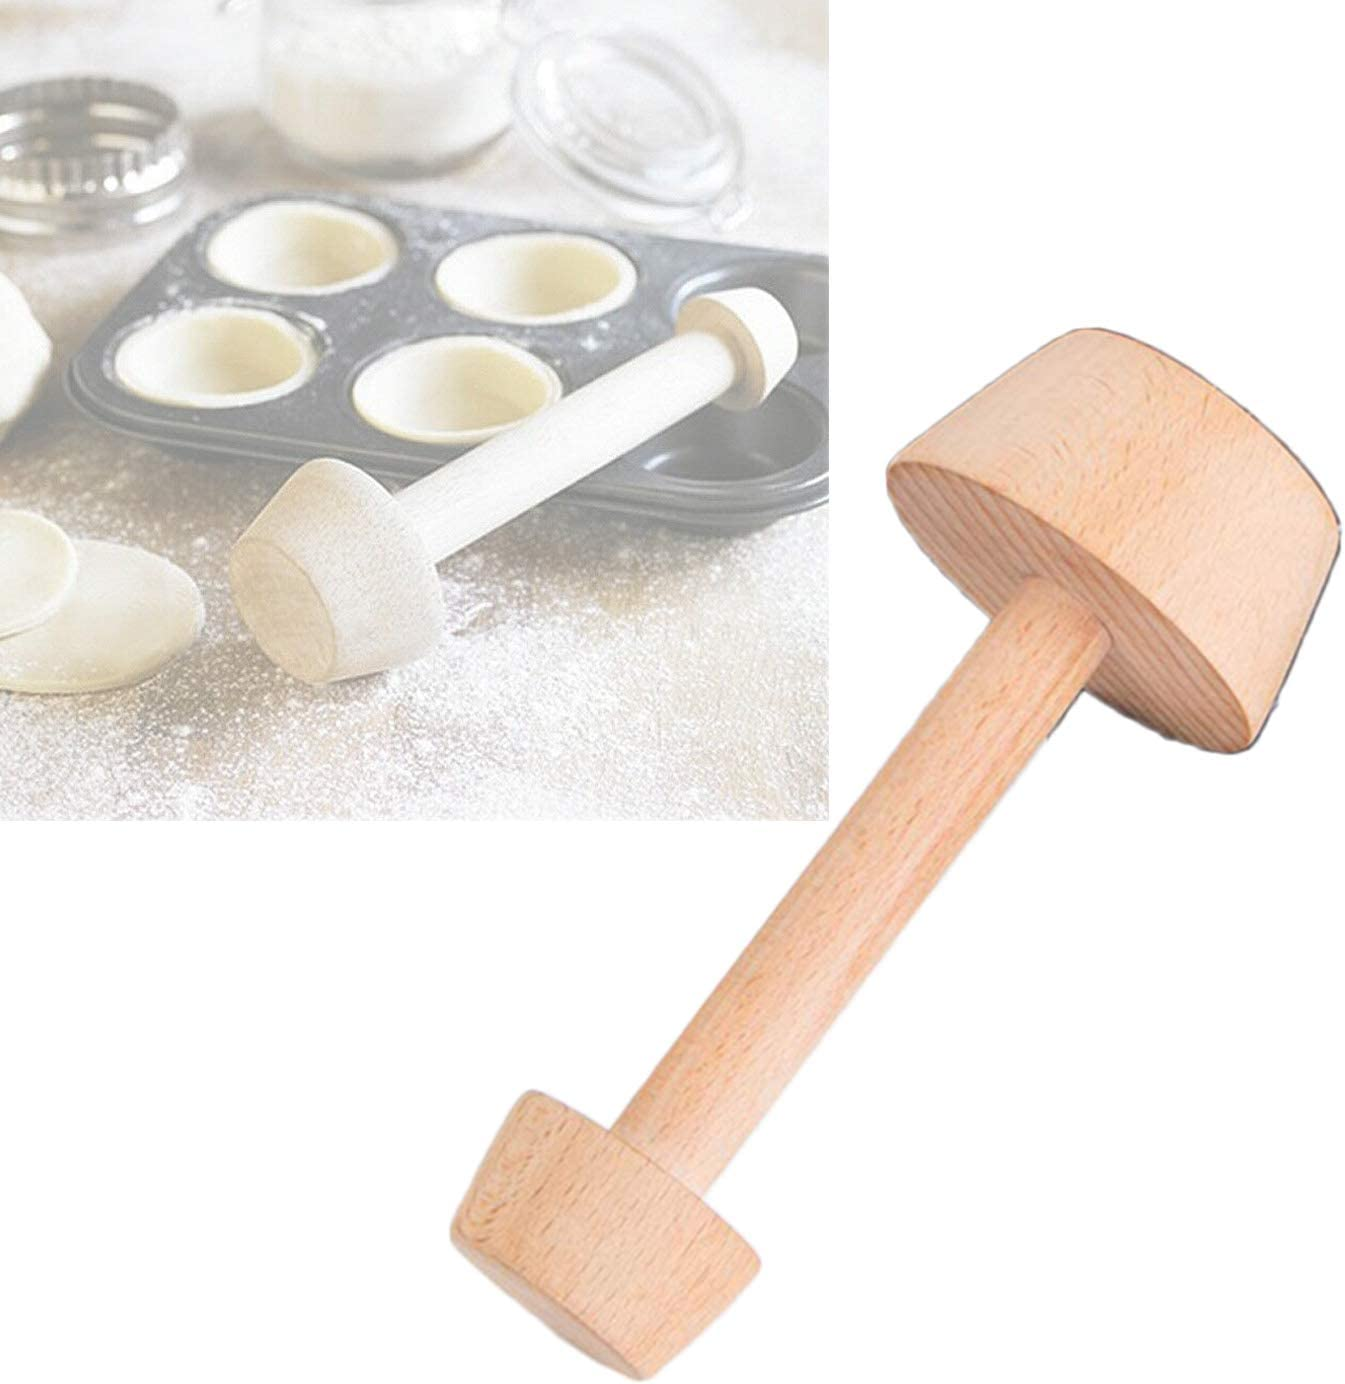 Beige Monoche DIY Egg Tart-Tamper 8.3 x 2.6 x 2.6 inches Double Side Wooden Egg Tart Cake Pusher Forming Machine Cake Baking Shaping Tools